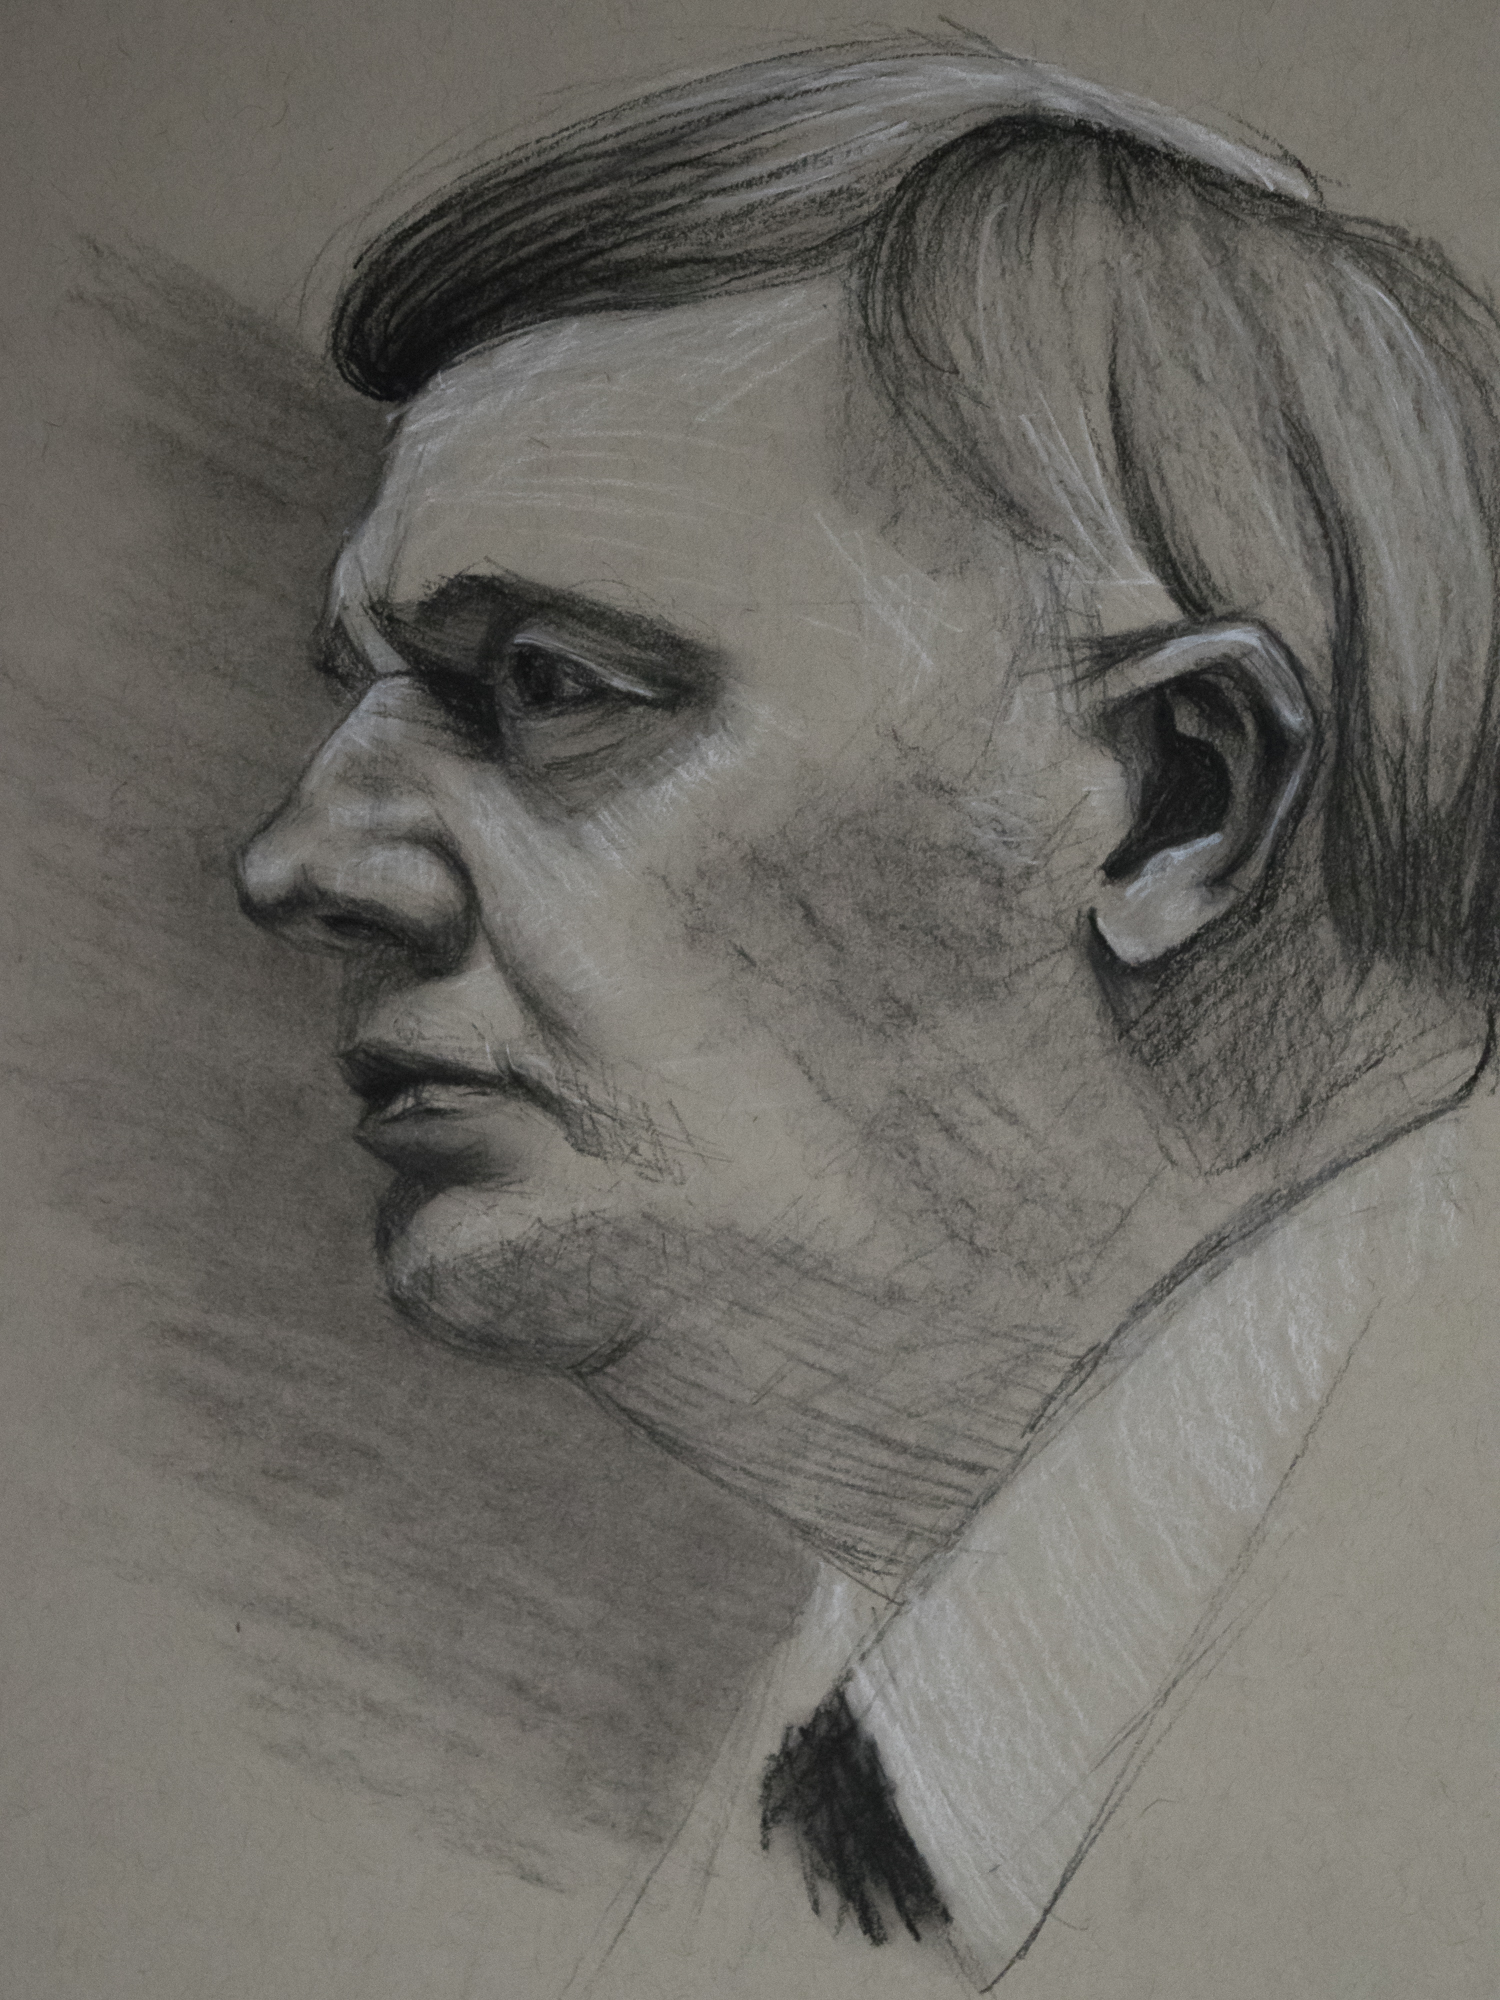 Male portrait in Charcoal on Grey Paper